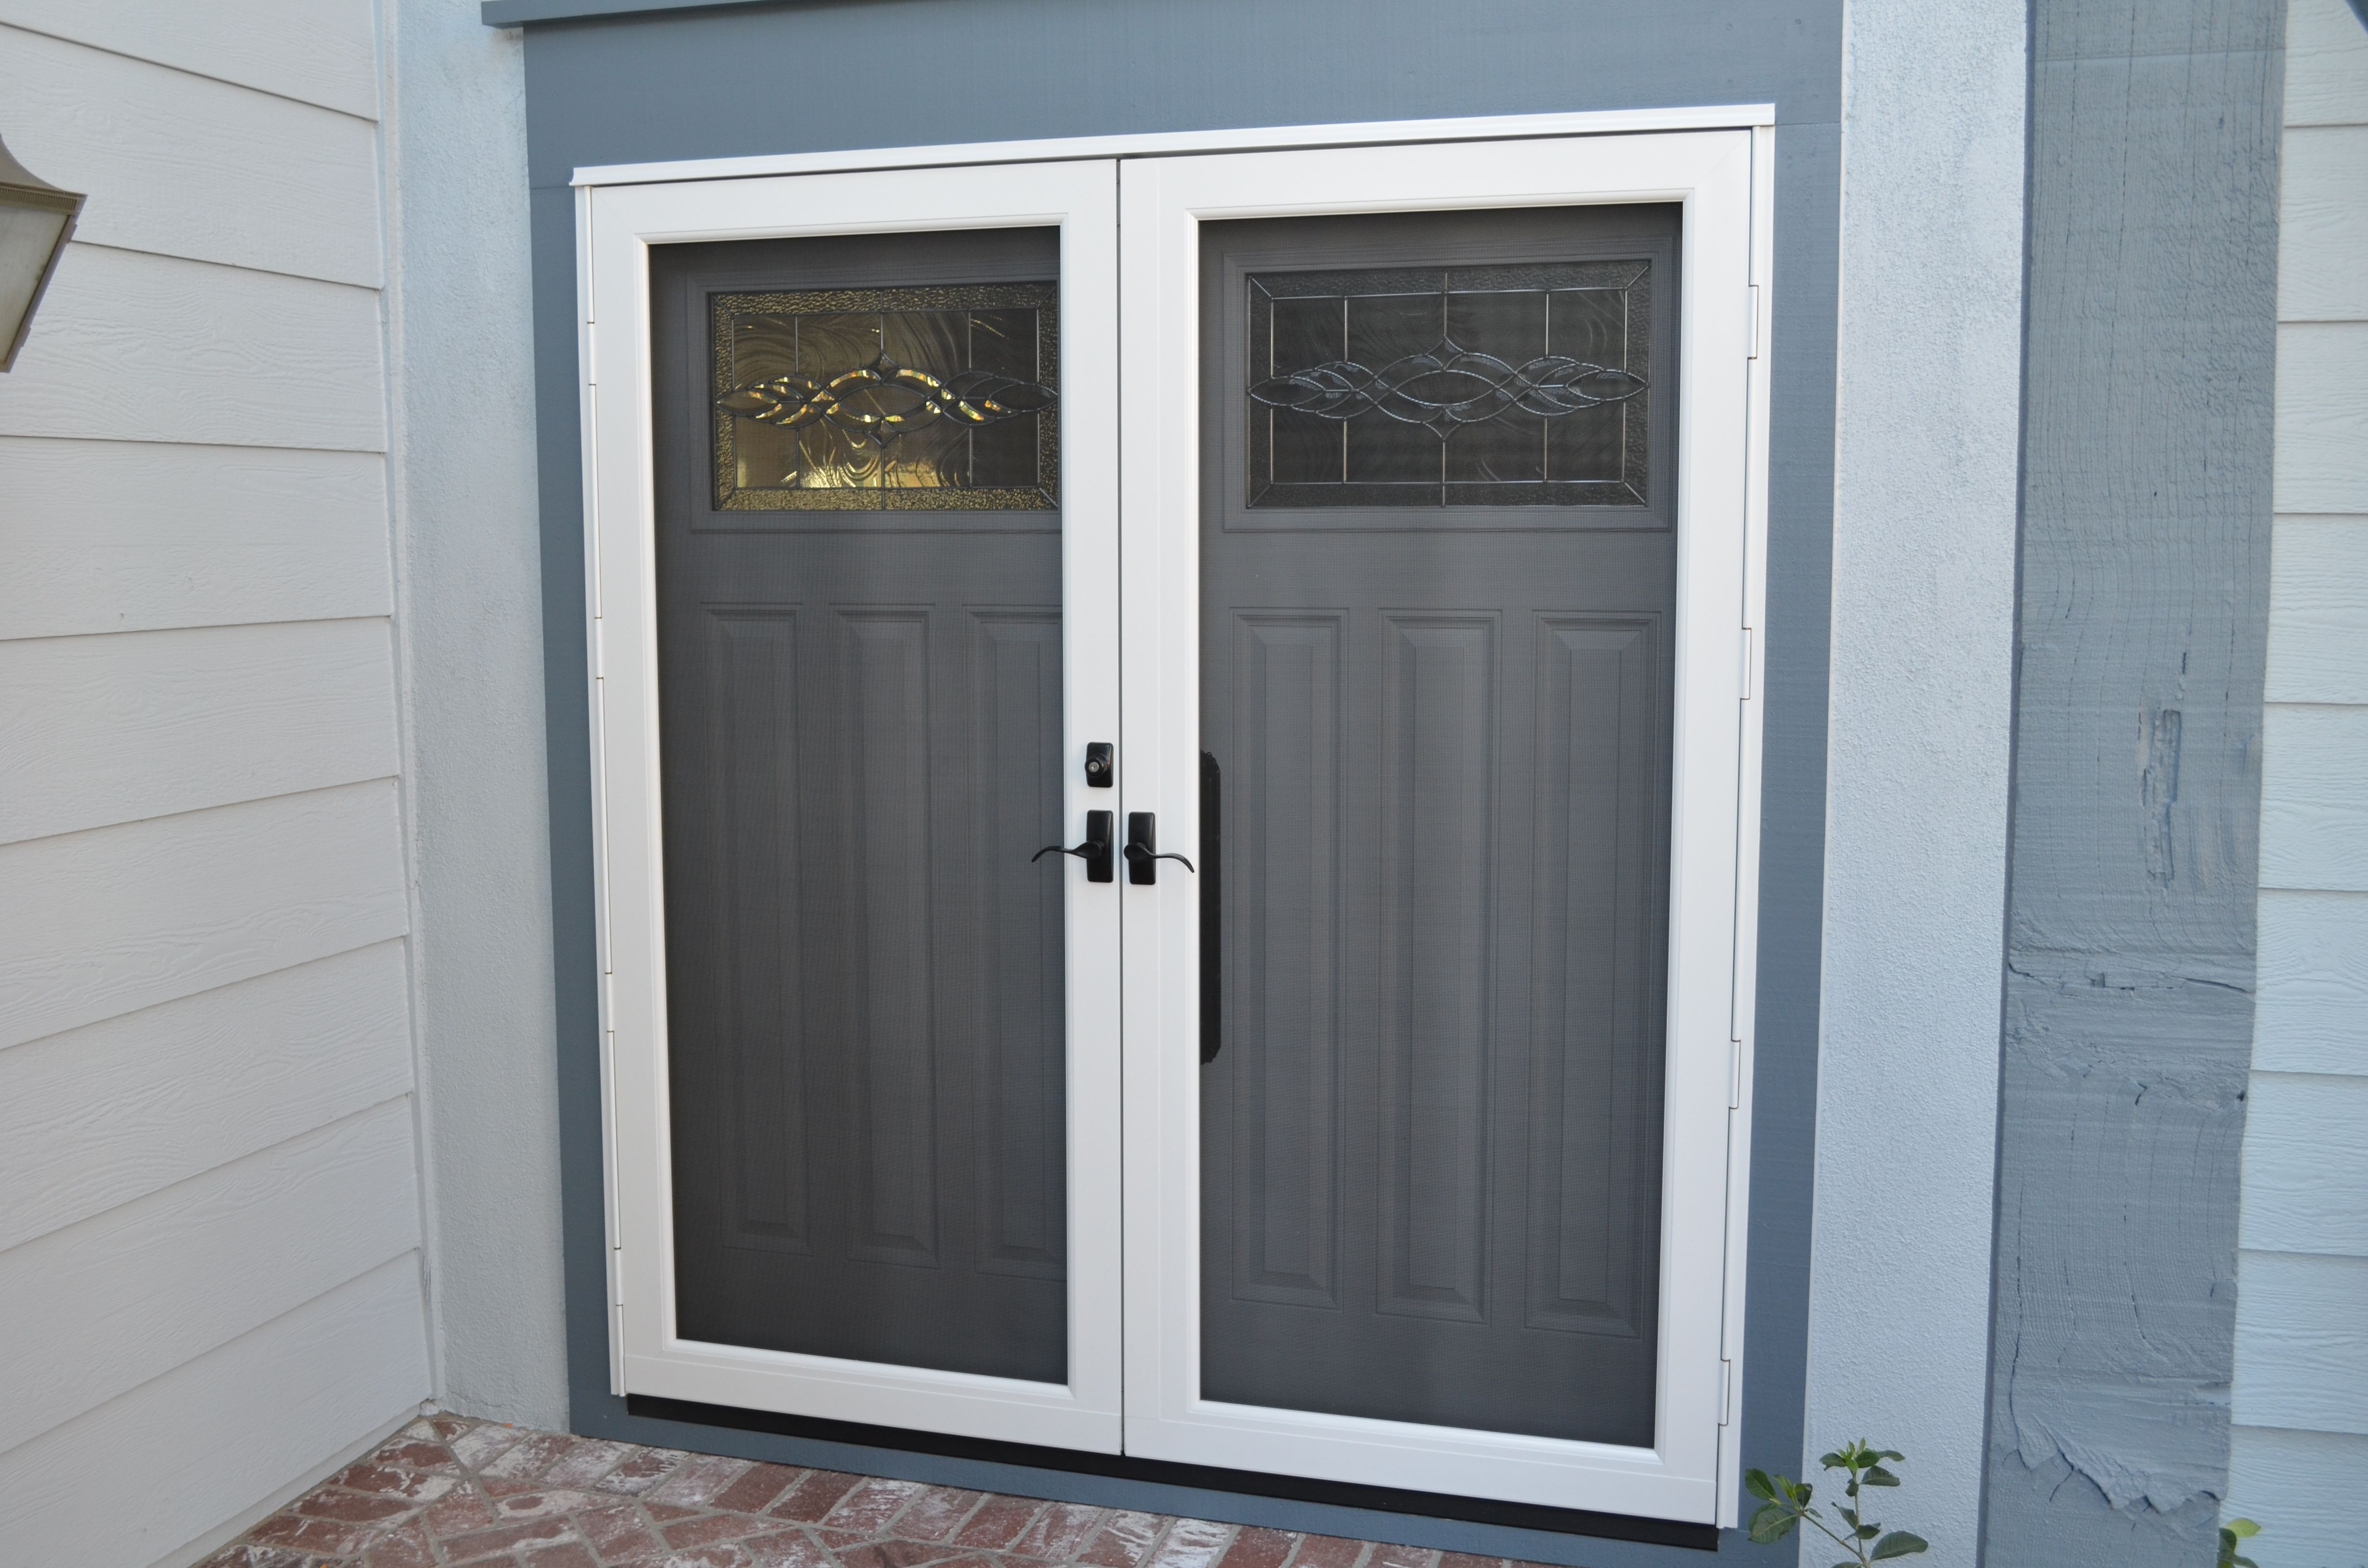 3264 #695F4B Provia Screens Entry Doors By Today's Windows And Doors Pinterest picture/photo Provia Doors 45594928